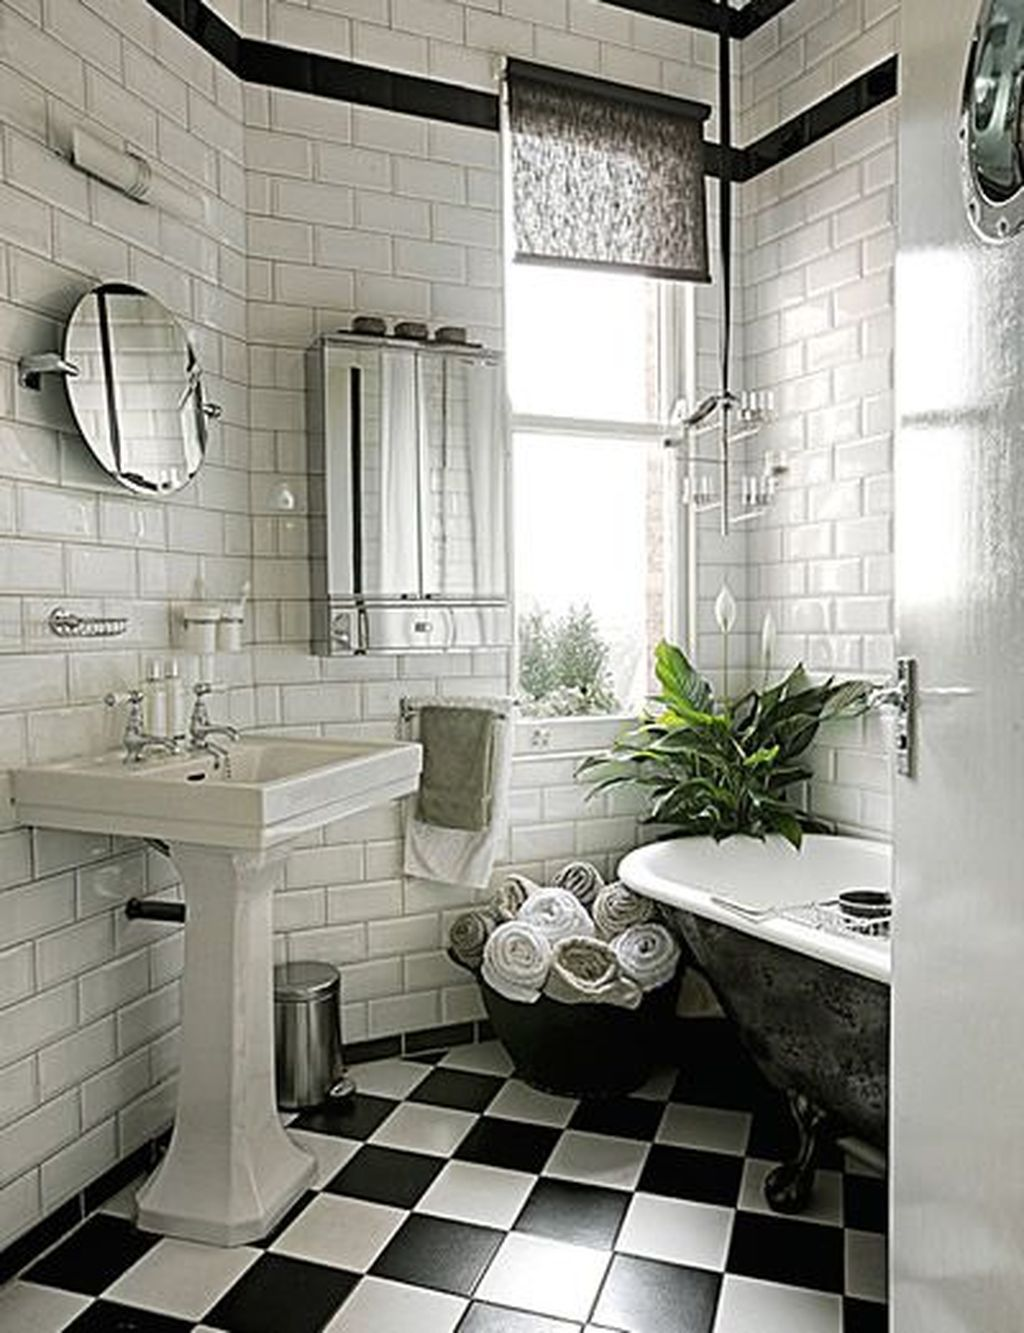 48 Beautiful Vintage Bathroom Decor Ideas Trends 2018 | Home ...